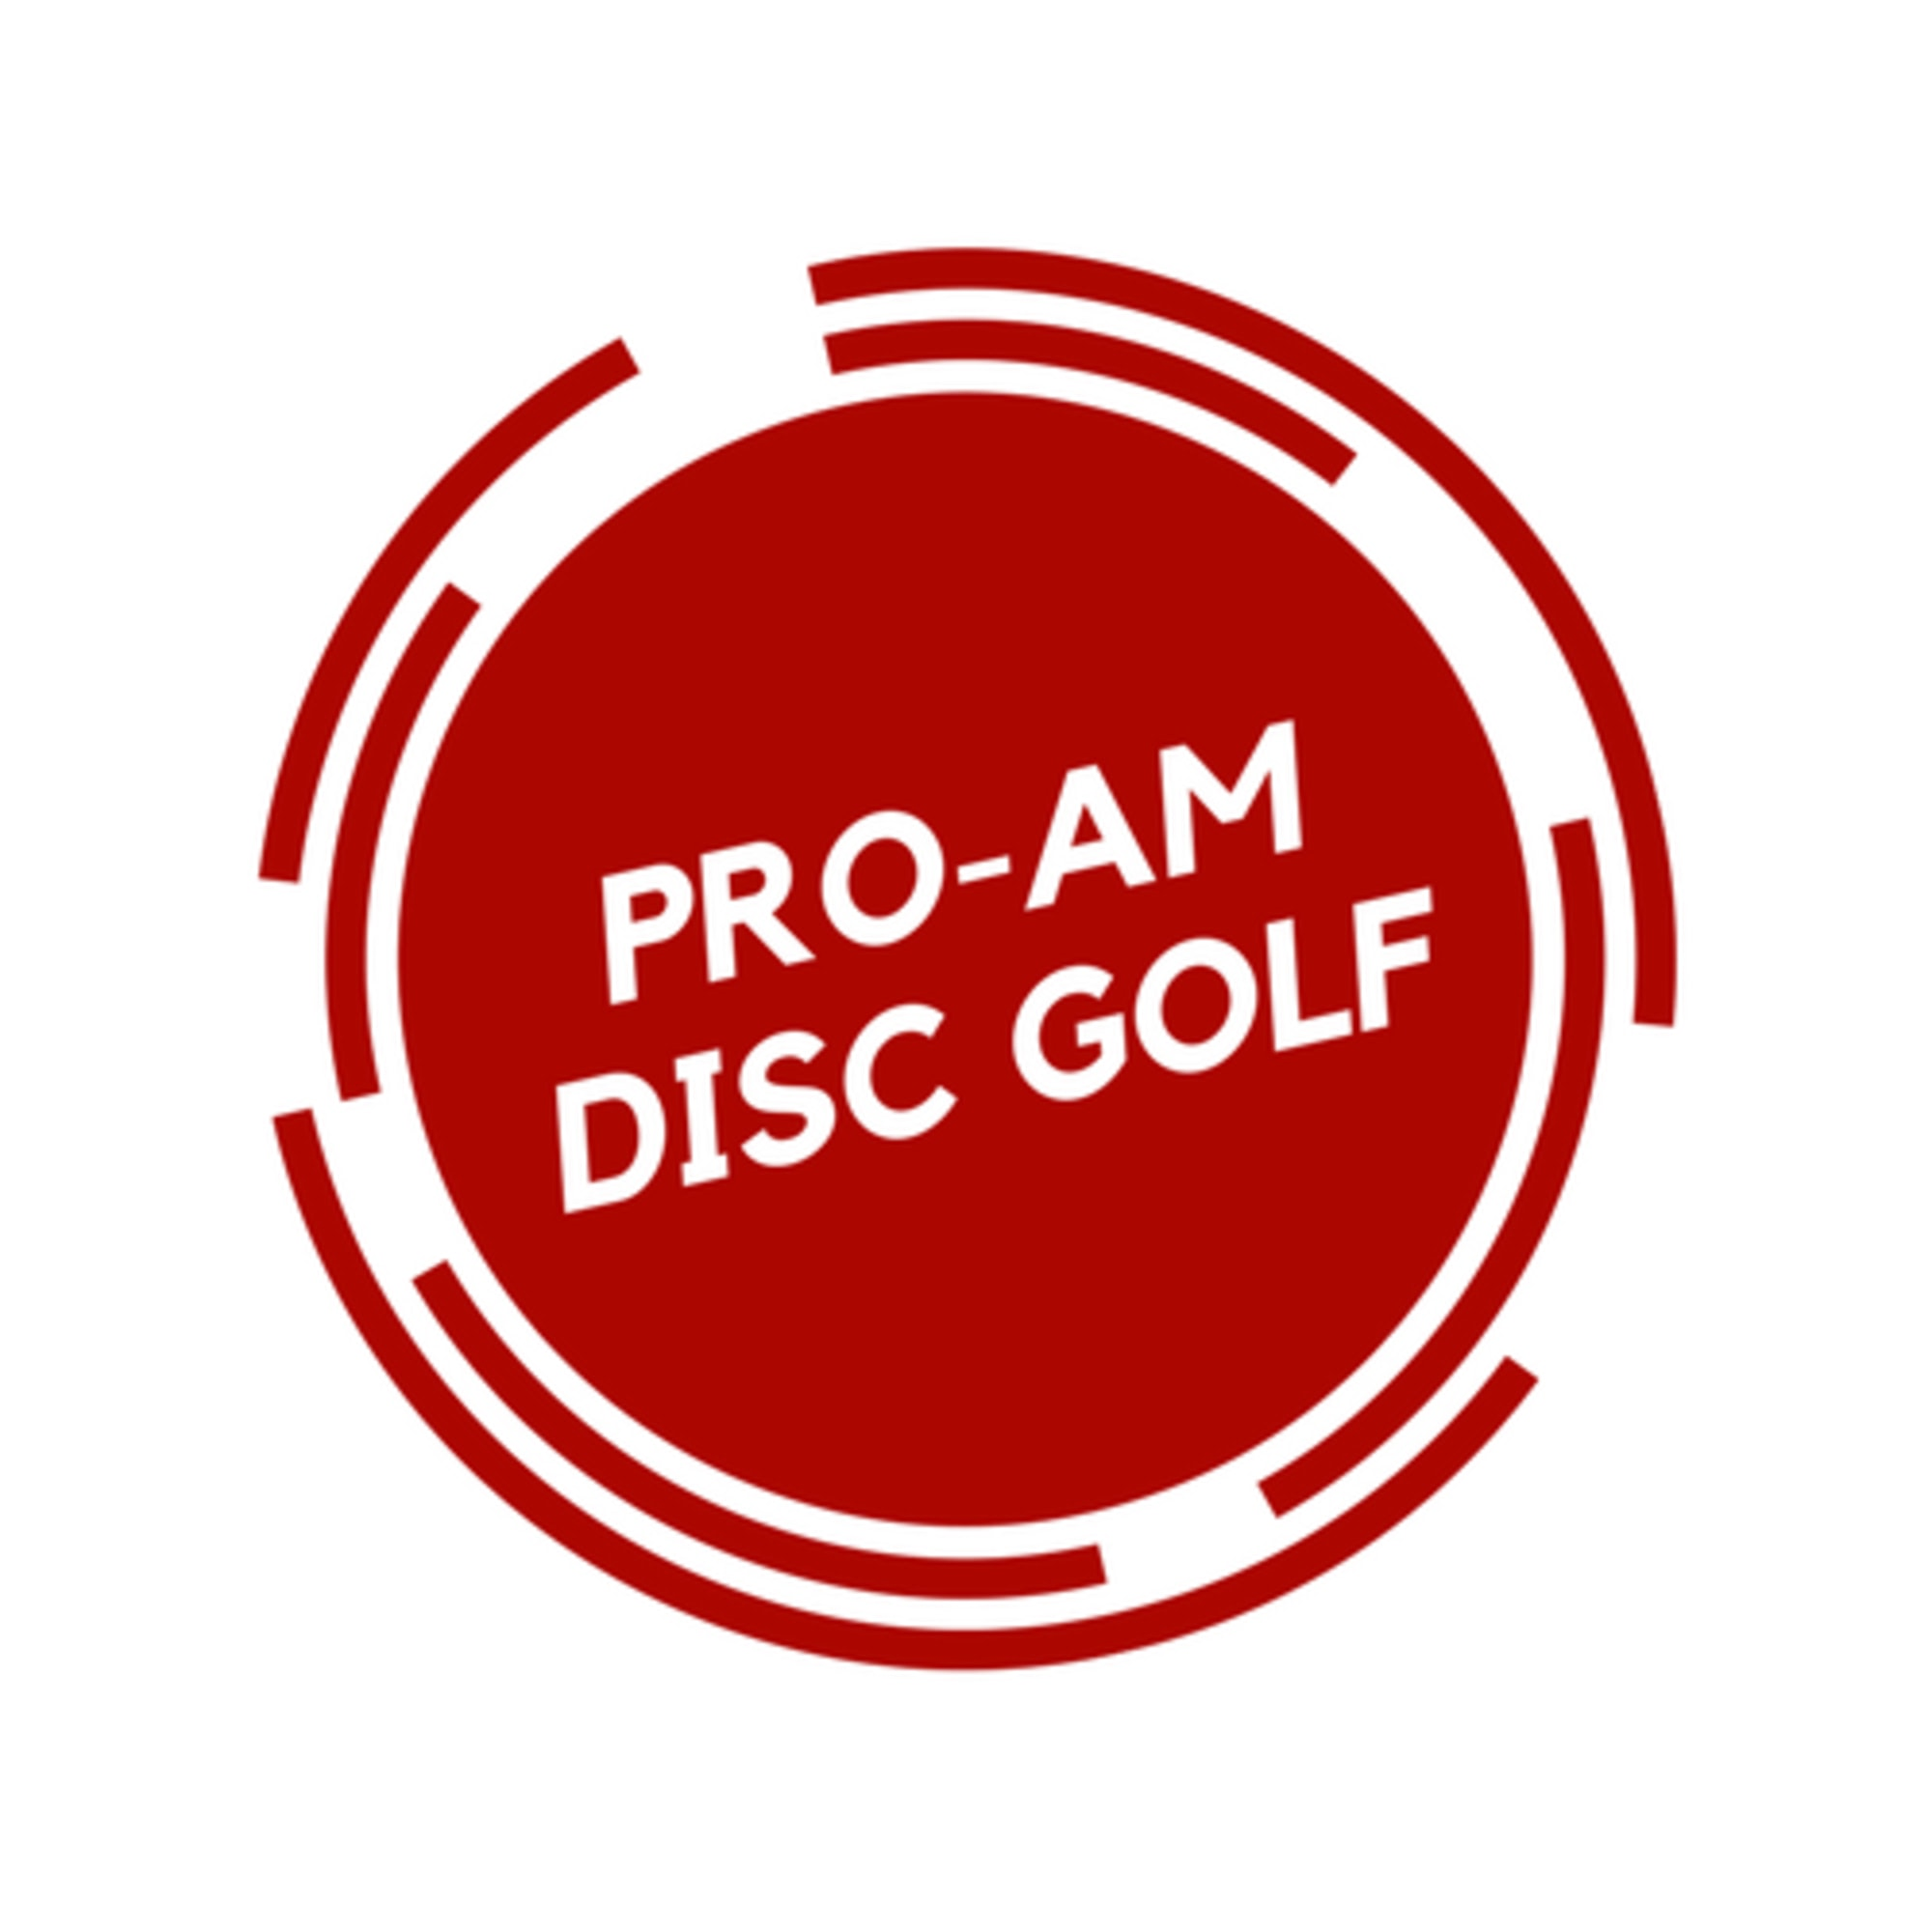 Pro-Am Disc Golf